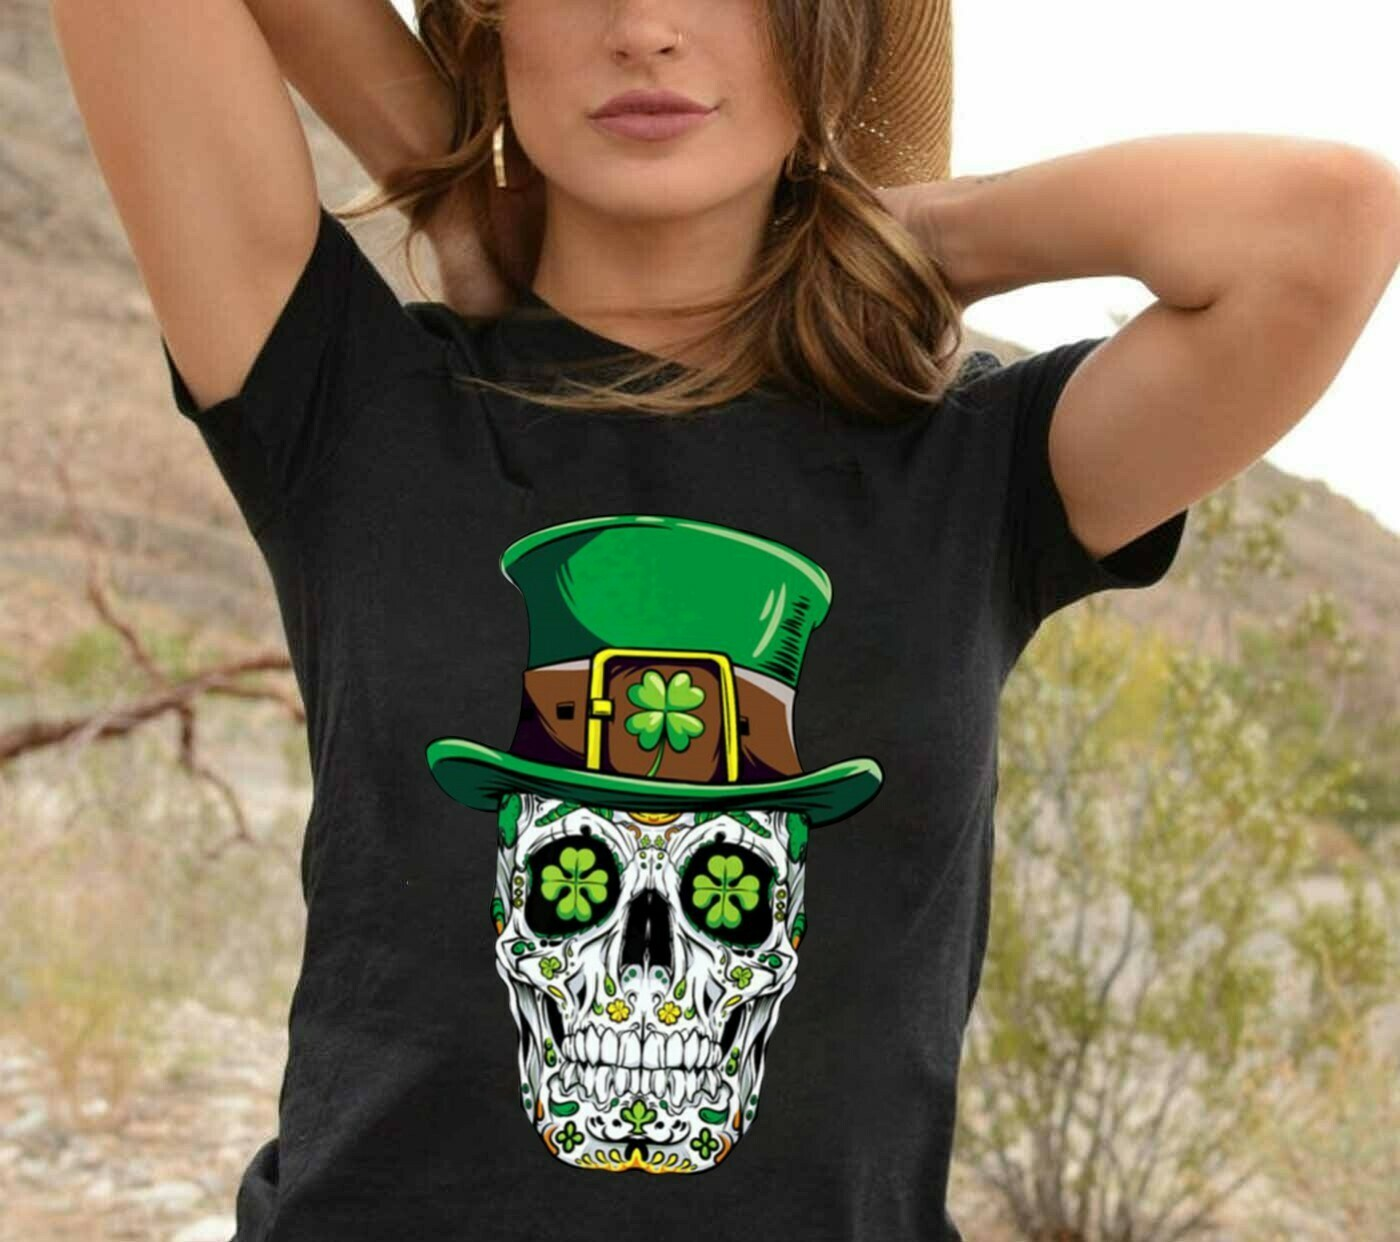 Happy St Patrick's Day Love Irish Sugar Skull,Day Of The Dead with Hat Four Leaf Clover Fashion Saint Paddy's day outfit  T-Shirt Hoodie Sweatshirt Sweater Tee Kids Youth Gifts Jolly Family Gifts